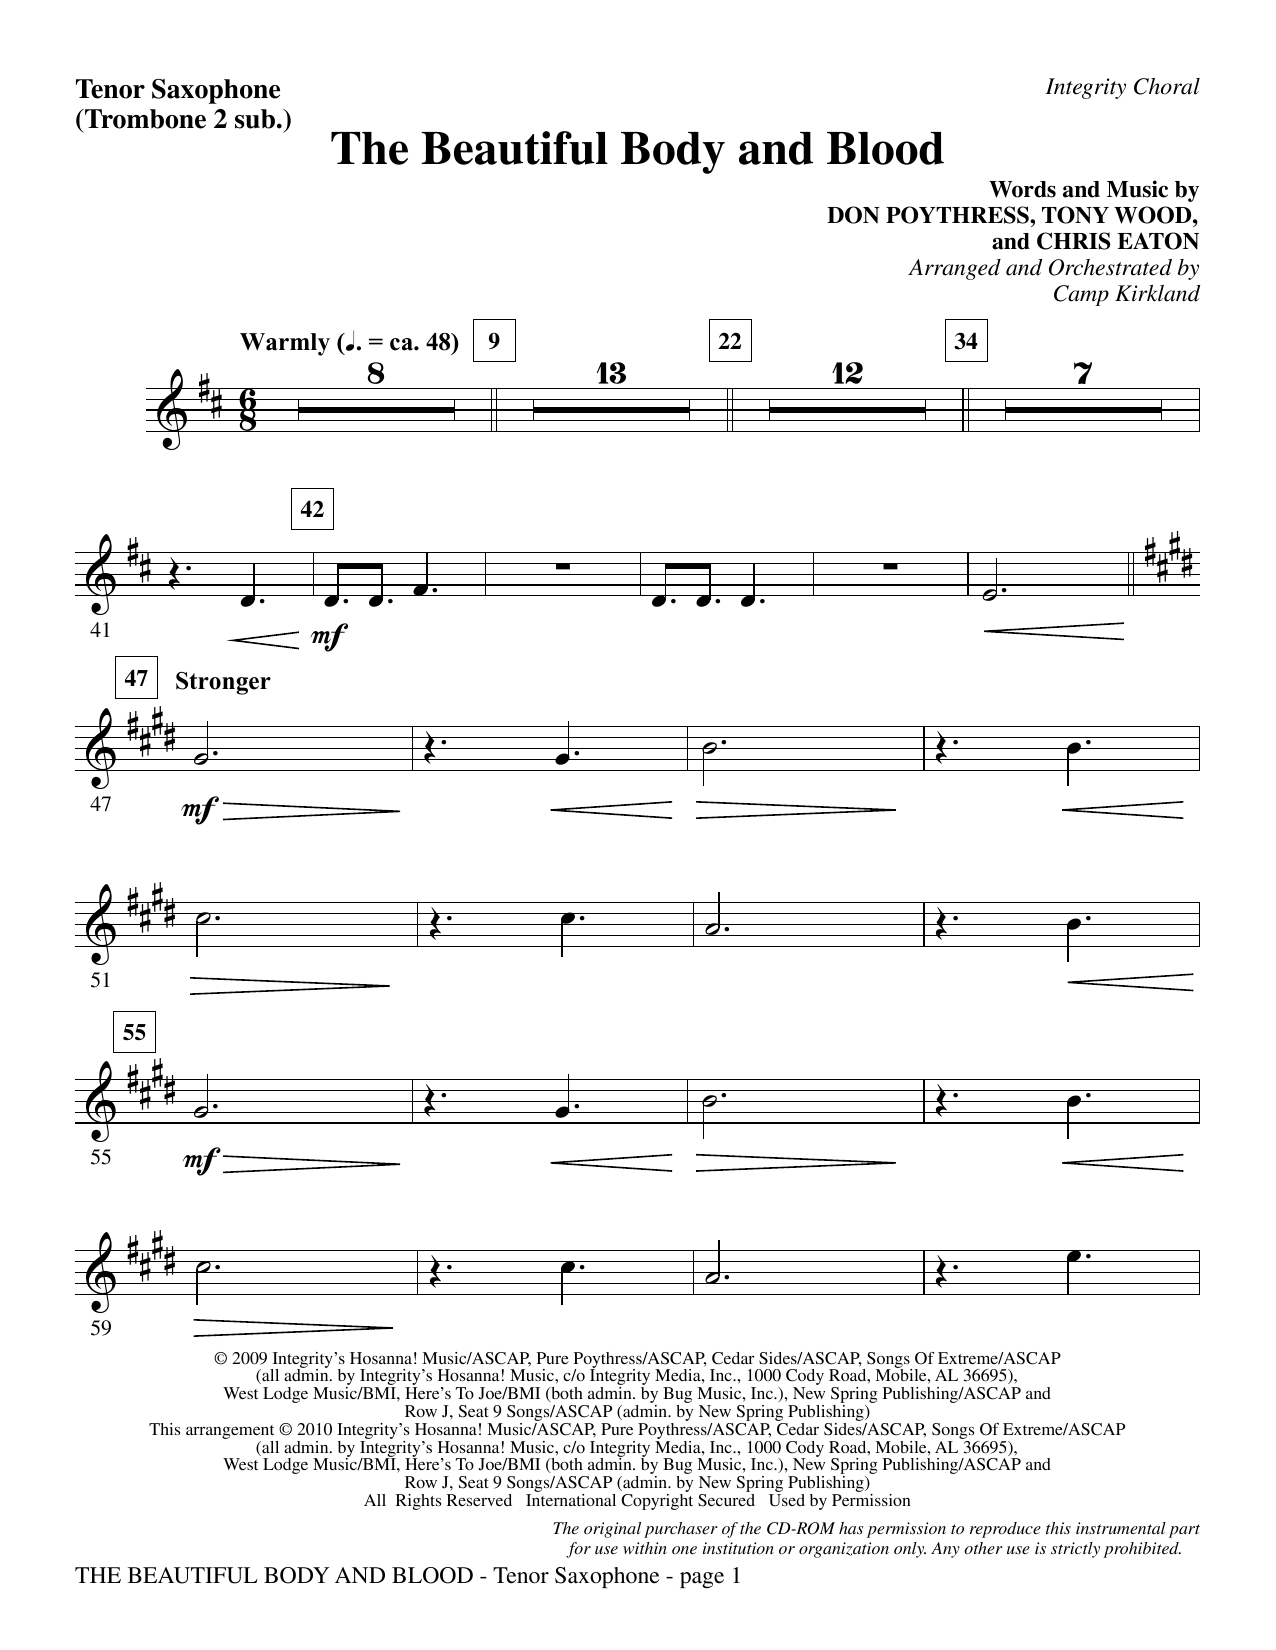 Camp Kirkland The Beautiful Body And Blood - Tenor Sax (sub. Tbn 2) sheet music notes and chords. Download Printable PDF.